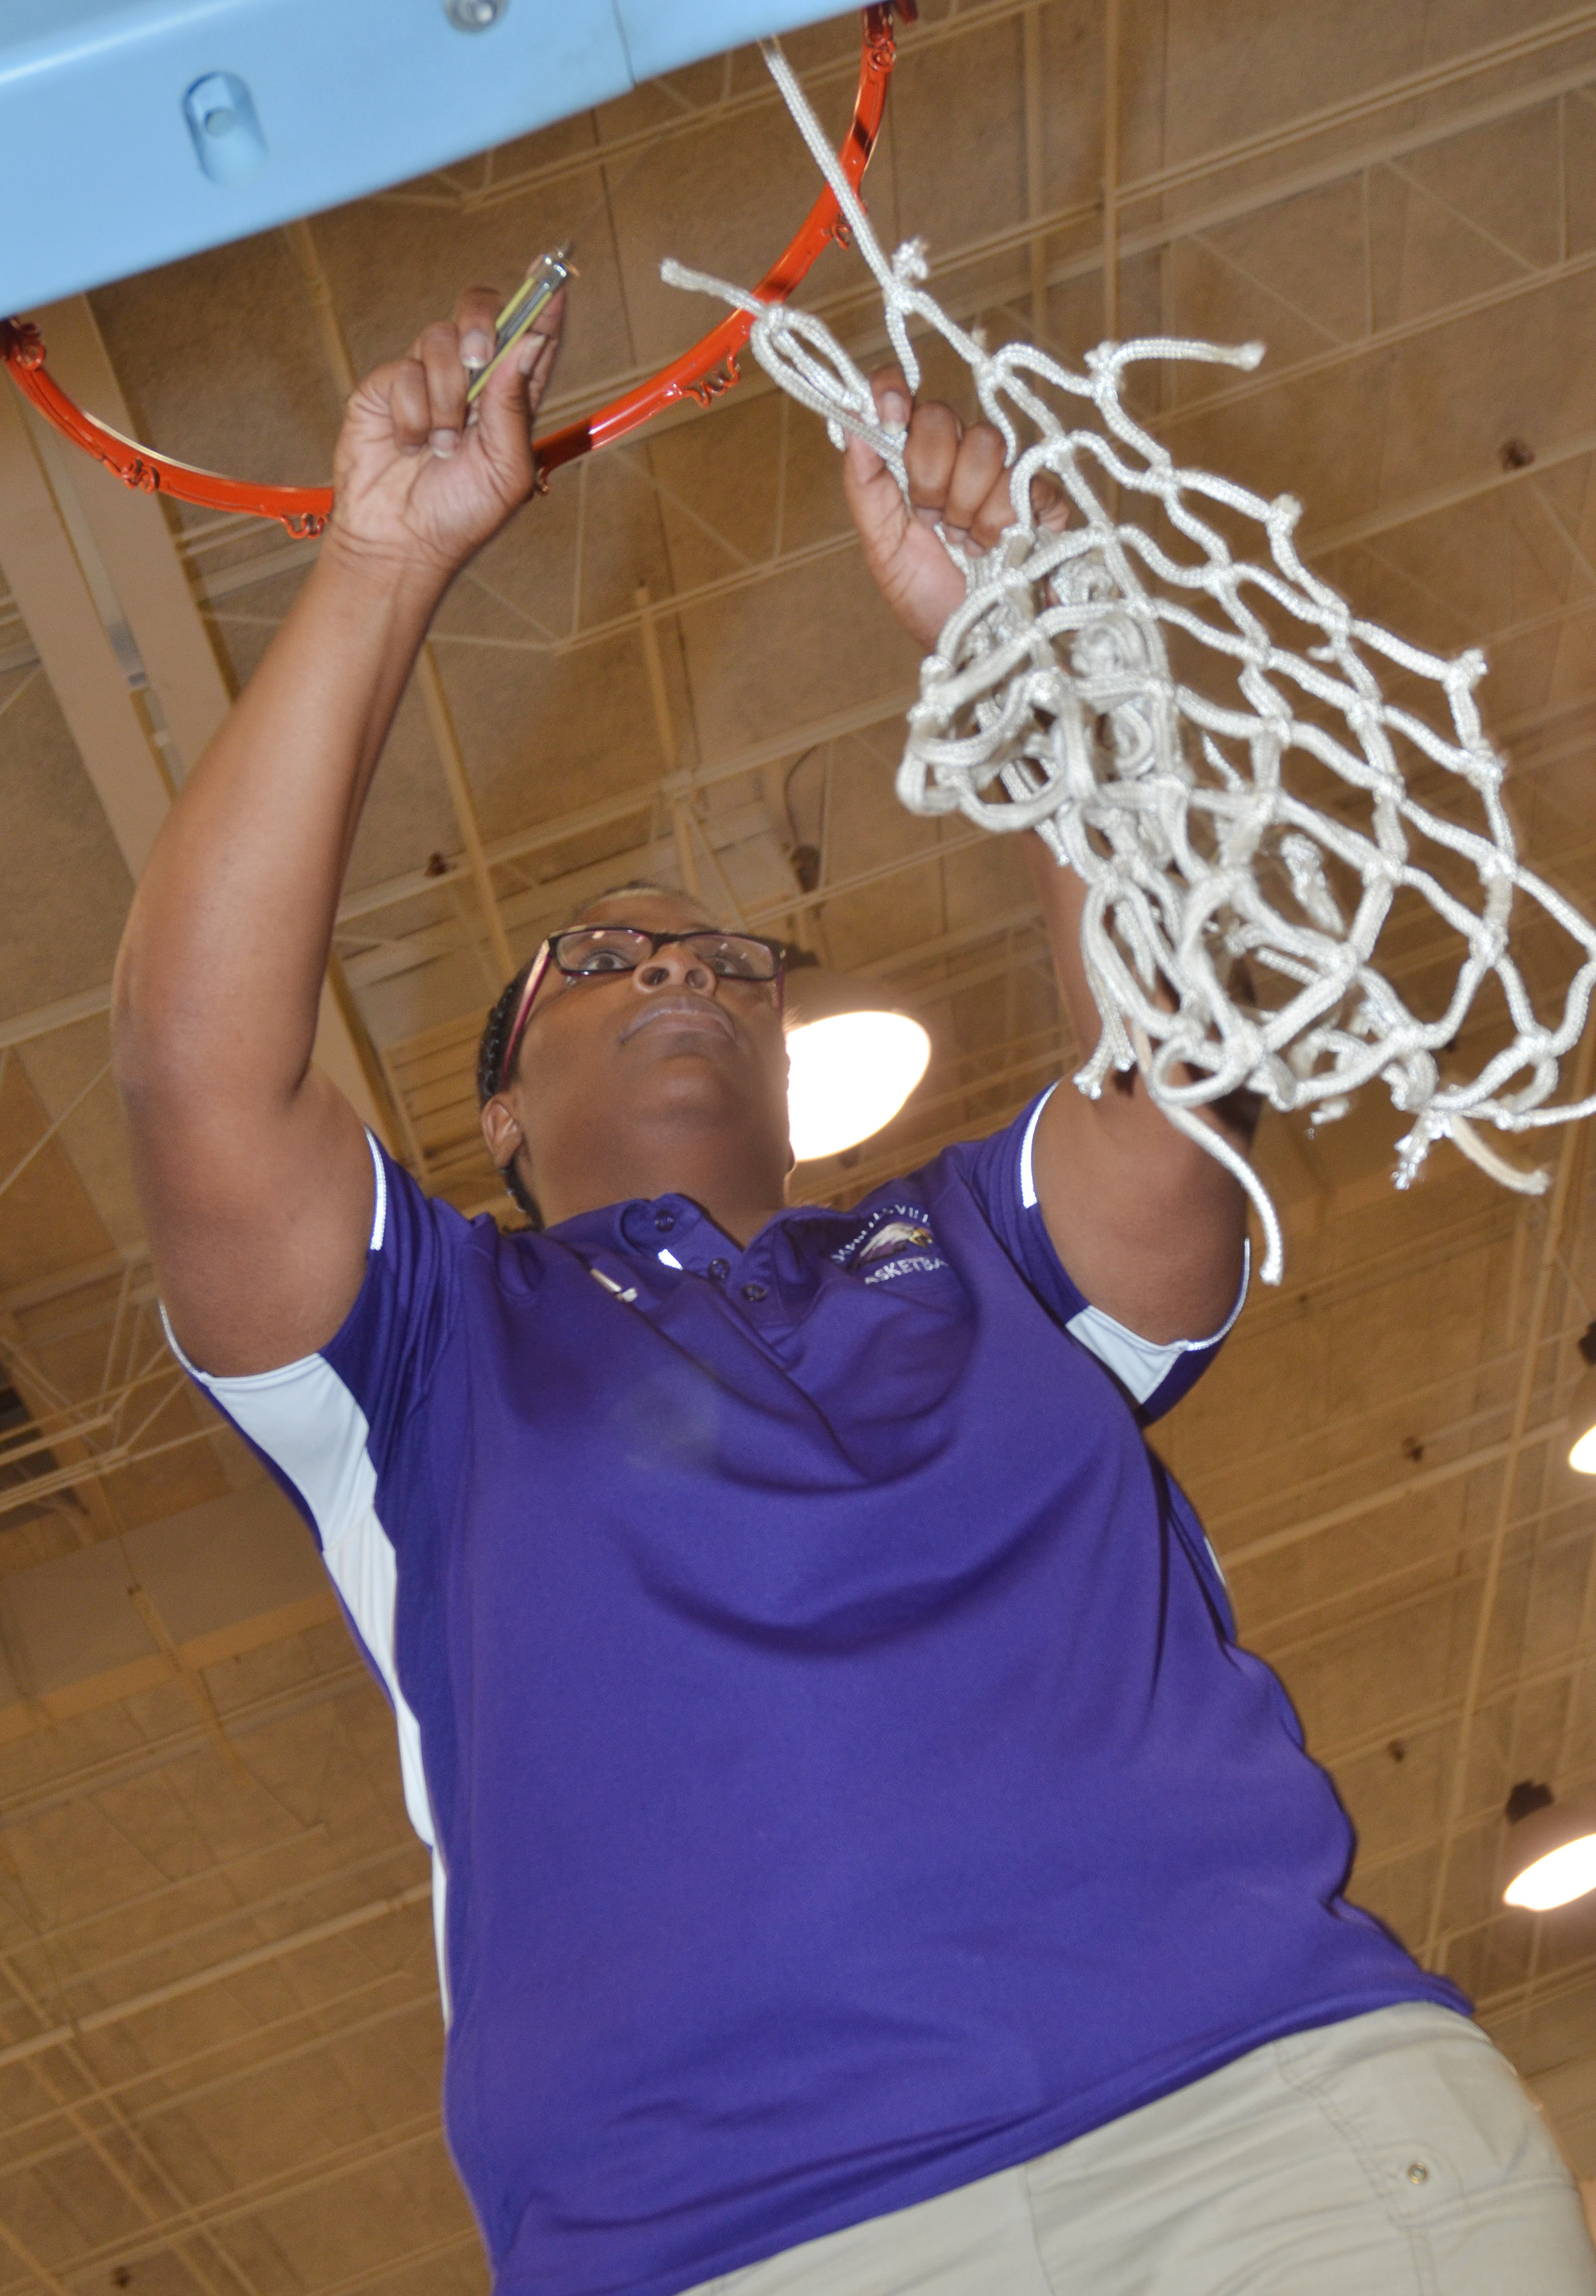 Campbellsville Middle School girls' eighth-grade basketball team recently won its first Central Kentucky Middle School Athletic Conference tournament championship title in 20 years. Above, CMS girls' basketball head coach Tiarra Cecil cuts down the championship net.